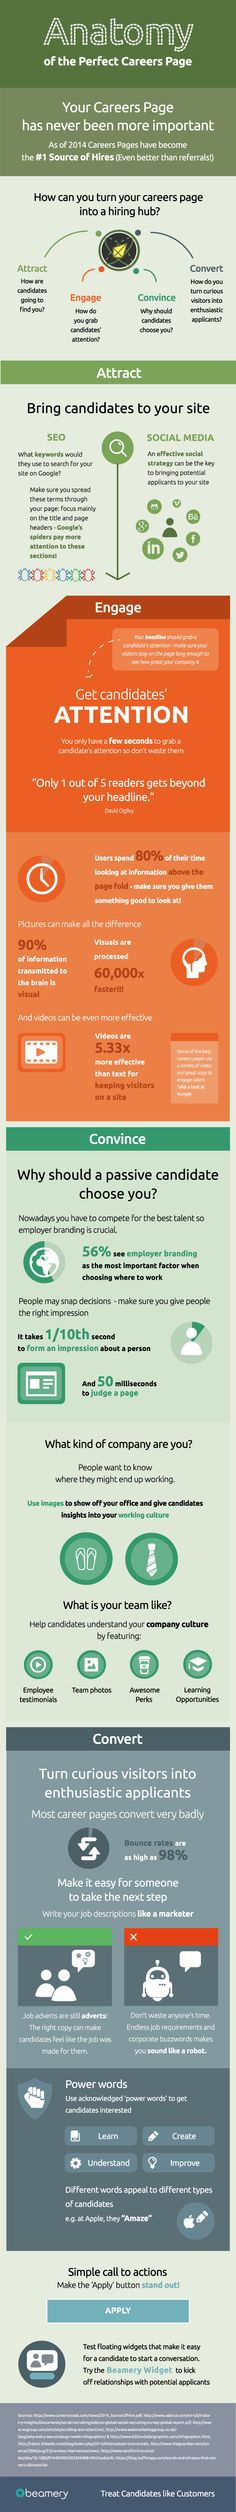 The Perfect Careers Page: A Complete Guide [Infographic] - Beamery Blog